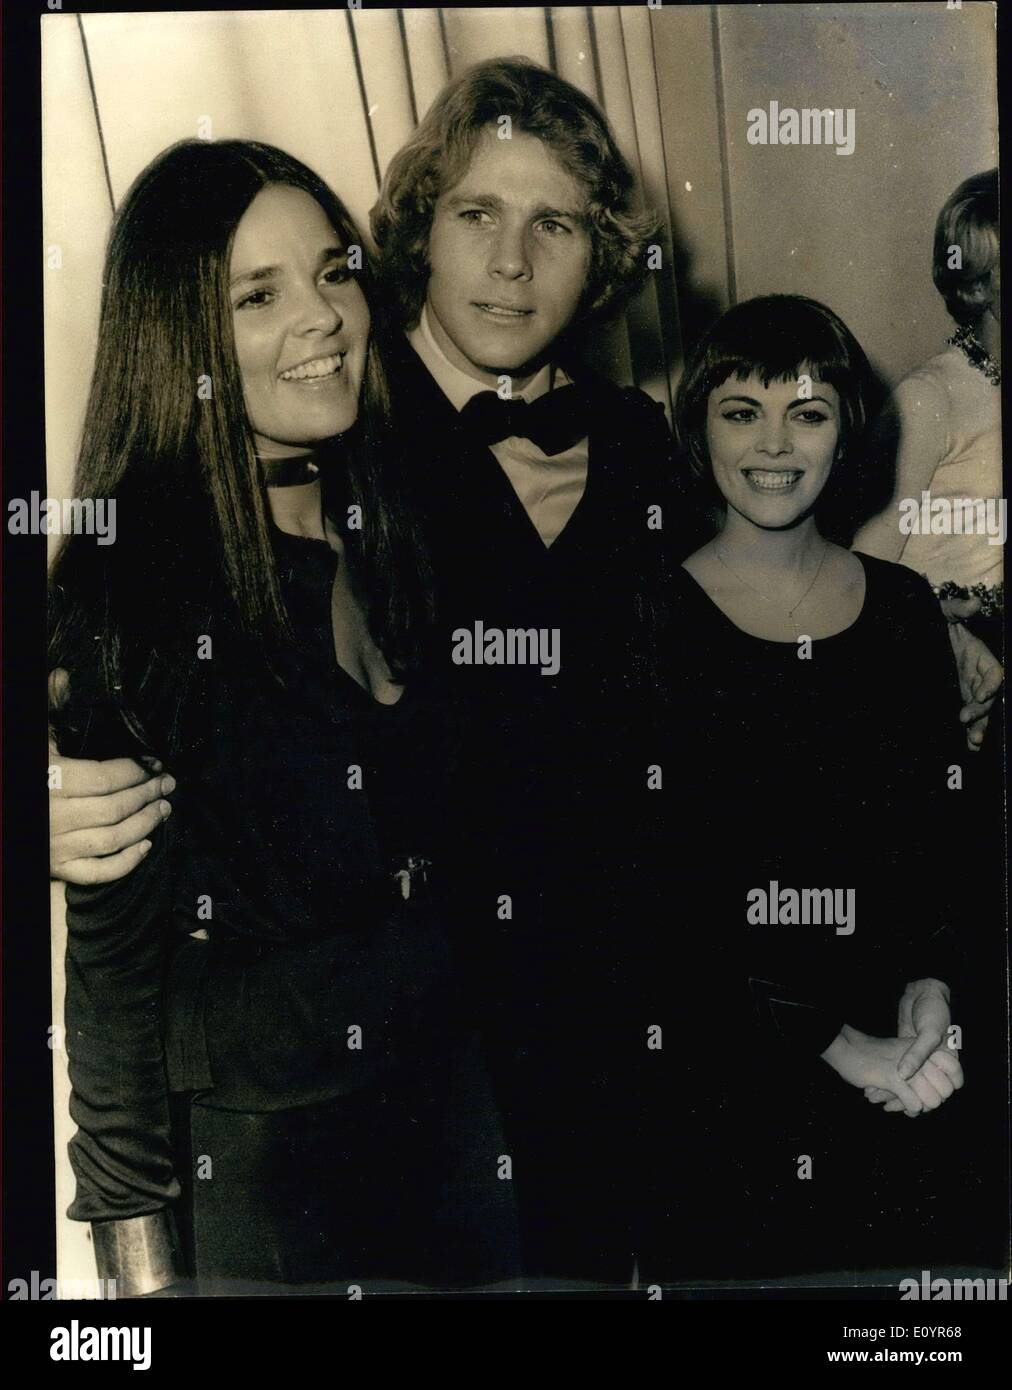 Mar. 20, 1971 - The stars of the movie, ''Love Story,'' Ryan O'Neal and Ali MacGraw are seen here with Mireille Mathieu at the movie's premiere Champs-Elysee Theater. - Stock Image